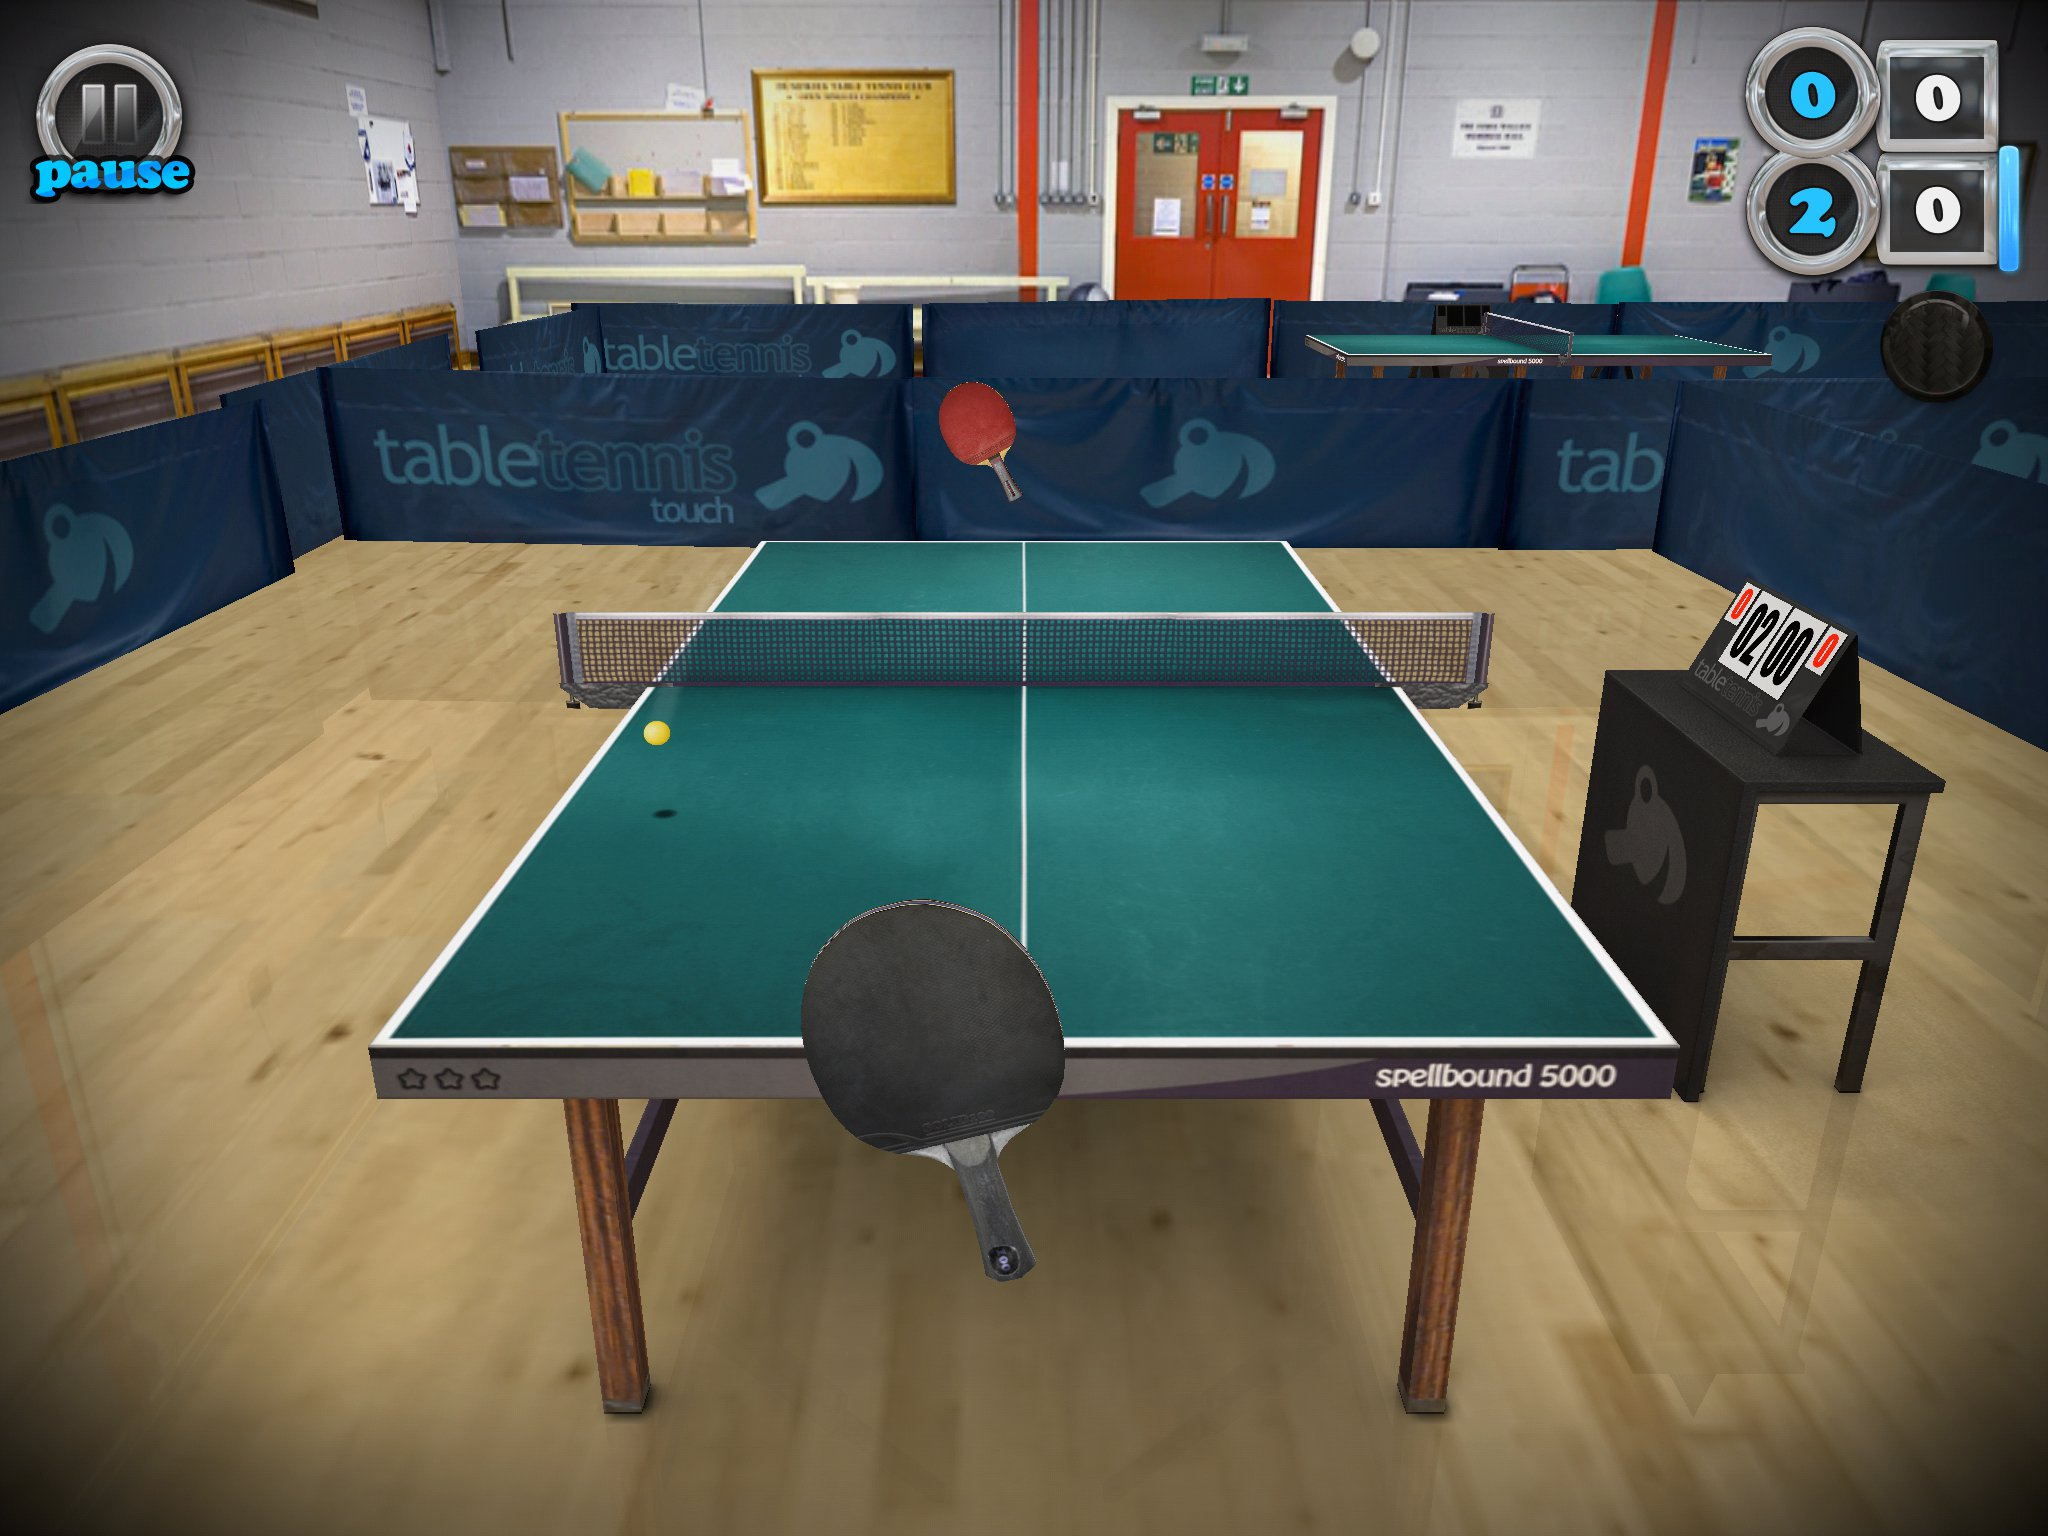 Table Tennis Touch: Three things to know about this Ping Pong extravaganza